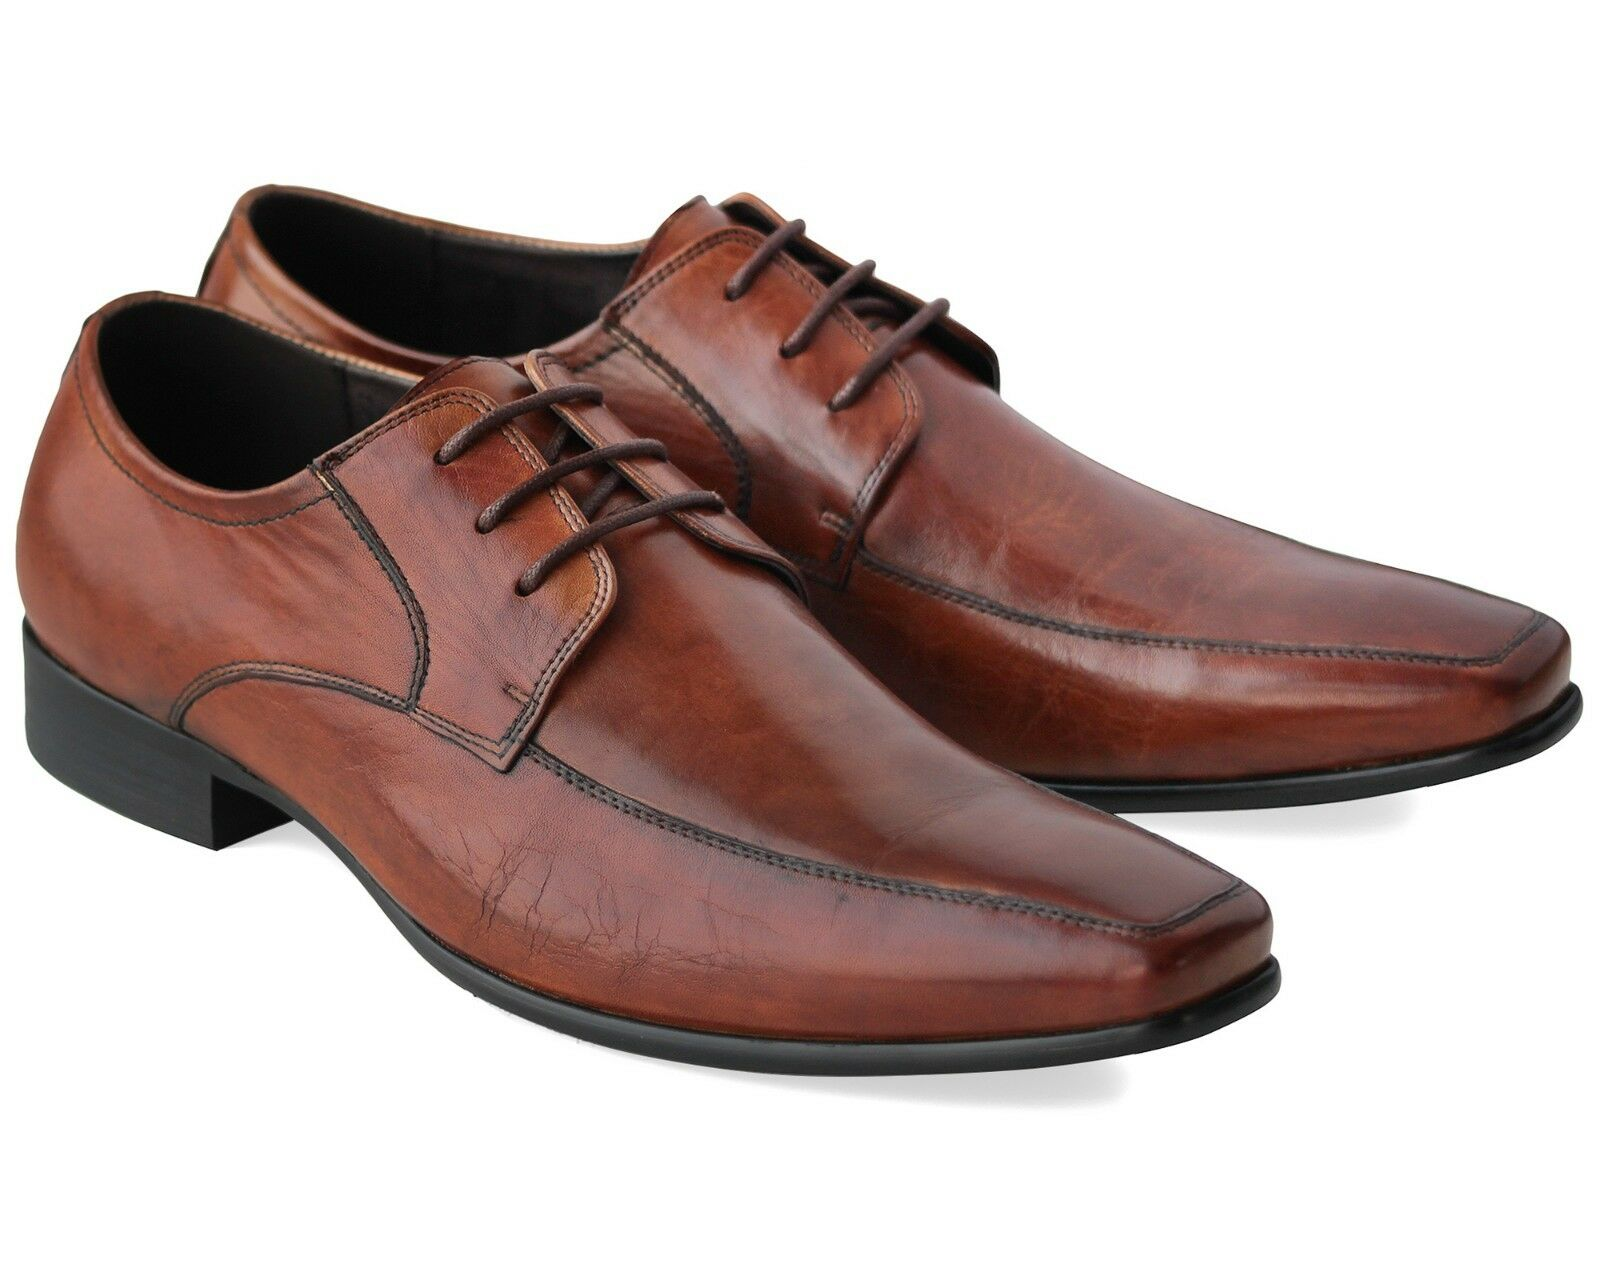 211 NEW MENS BROWN SMART SHOES LACE UP REAL LEATHER CASUAL WORK